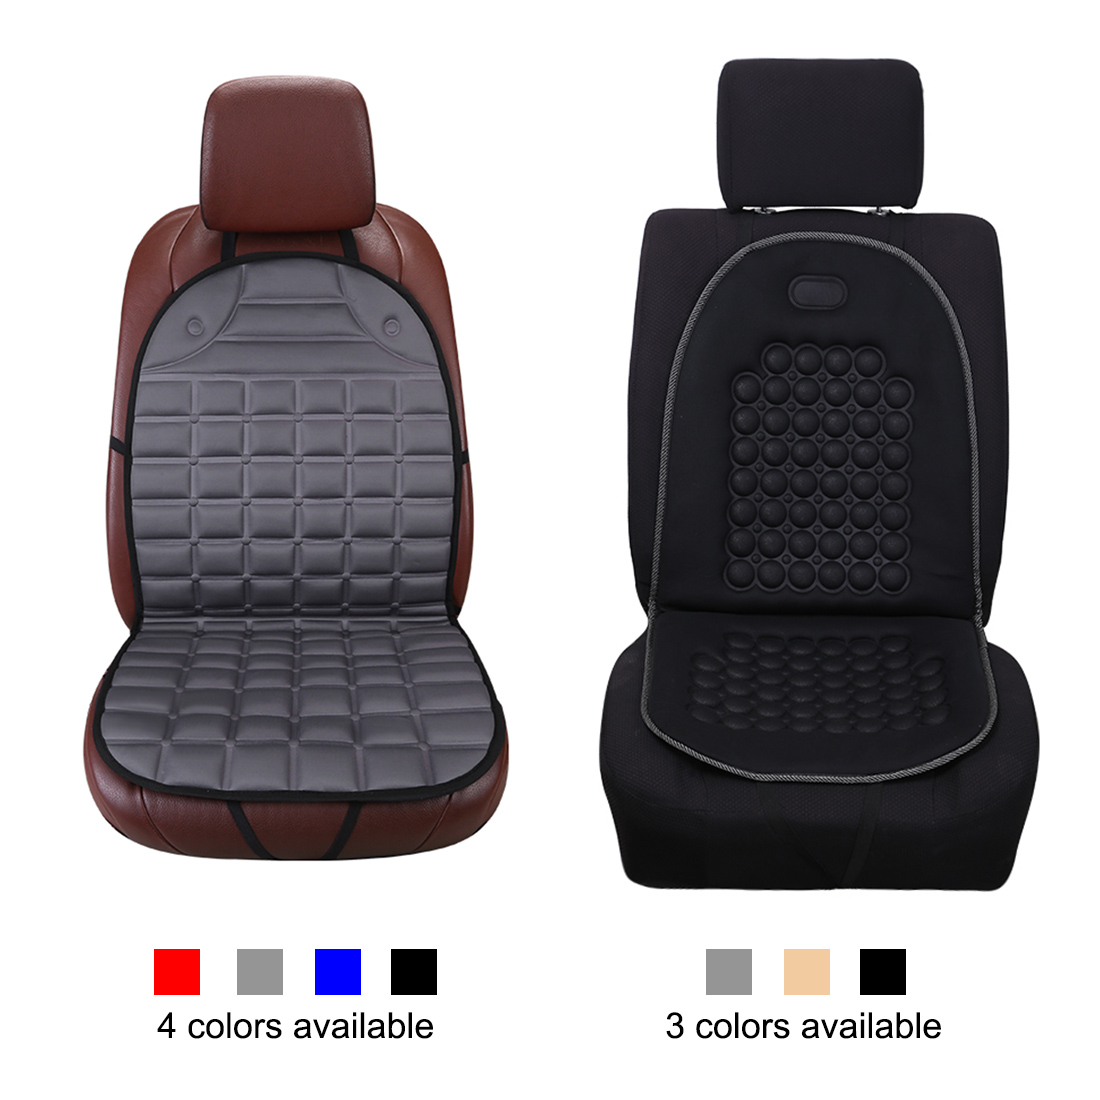 Dewtreetali Car <font><b>Seat</b></font> <font><b>Cover</b></font> Universal Warm Car <font><b>Seat</b></font> Cushion Winter Car Interior Accessories for <font><b>Peugeot</b></font> <font><b>206</b></font> Bmw e30 e36 image